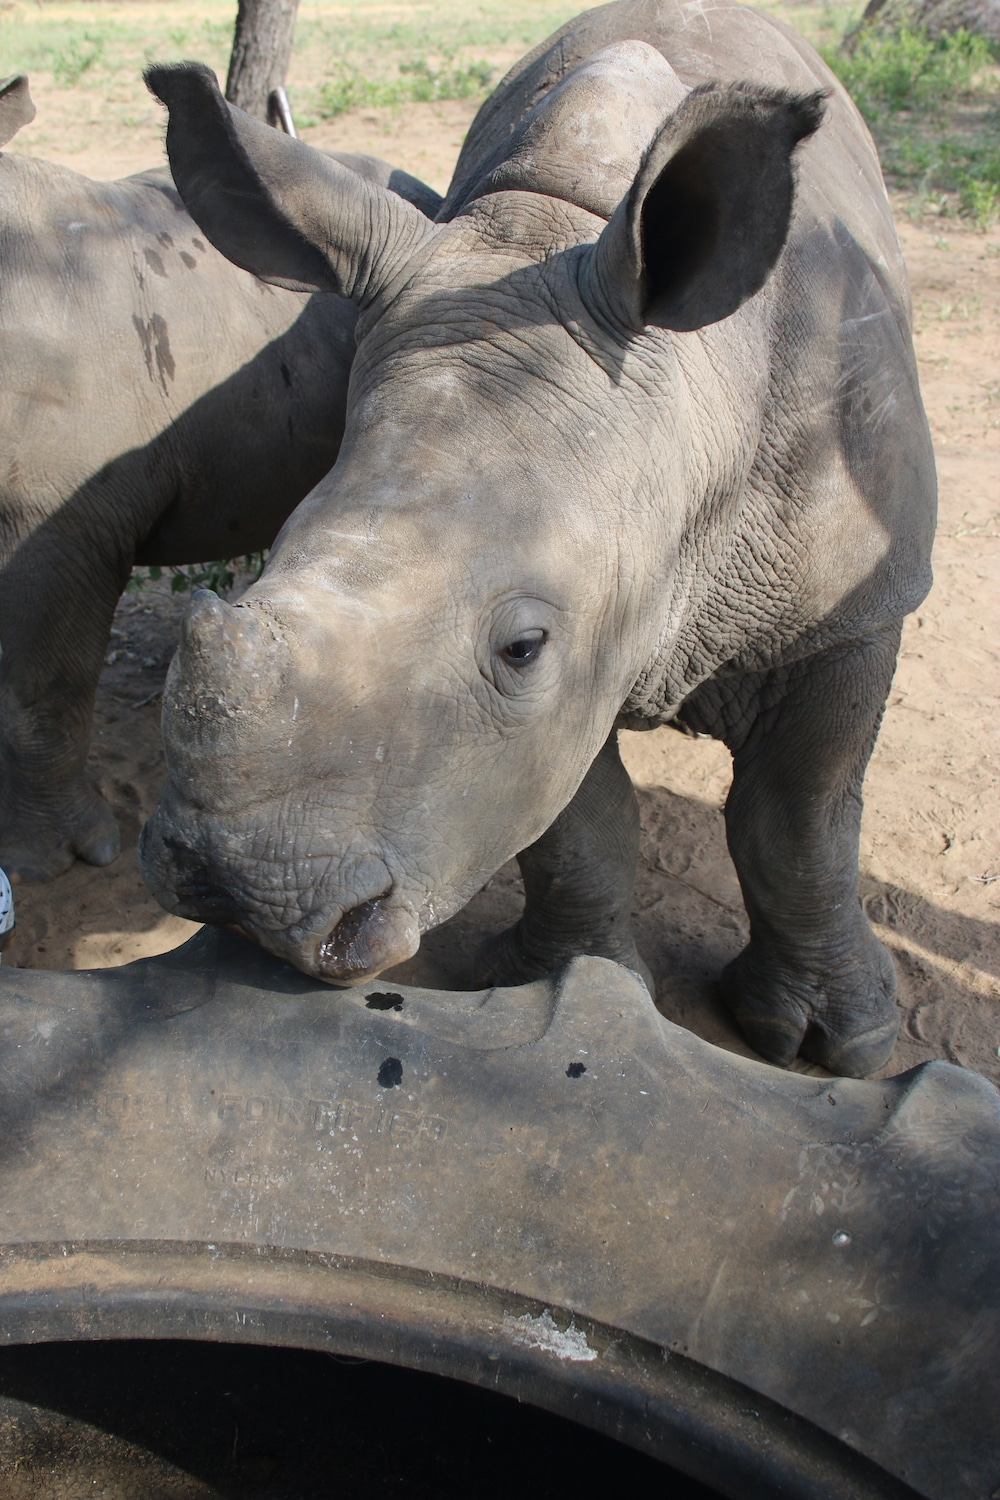 Young rhino investigating a tire